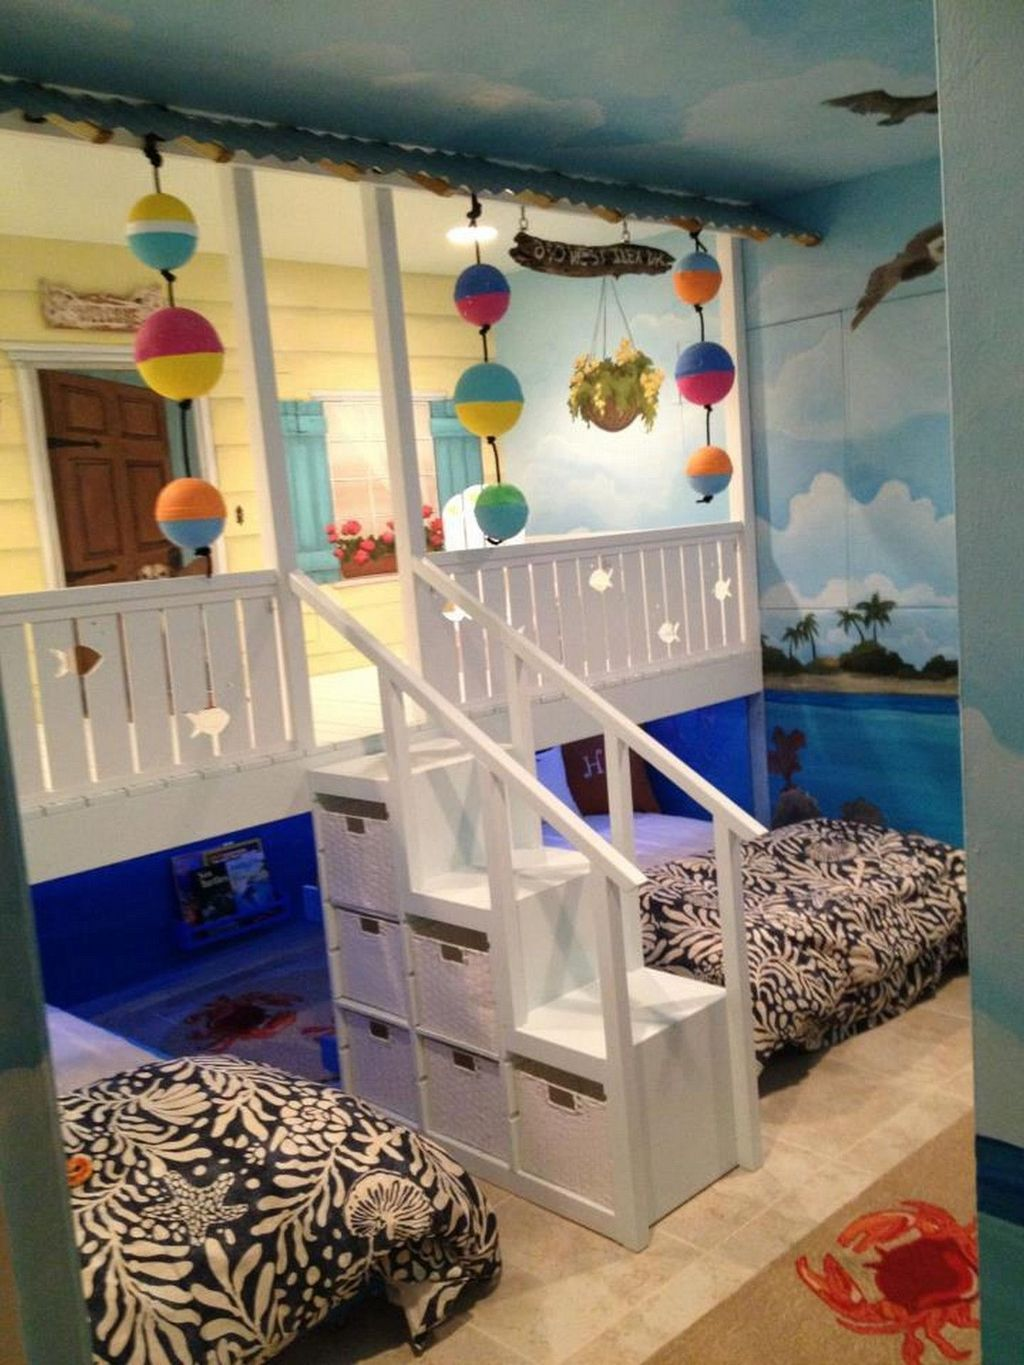 Awesome Bedroom Decorating Ideas For Kids 22 Jpg 1024 1365 With